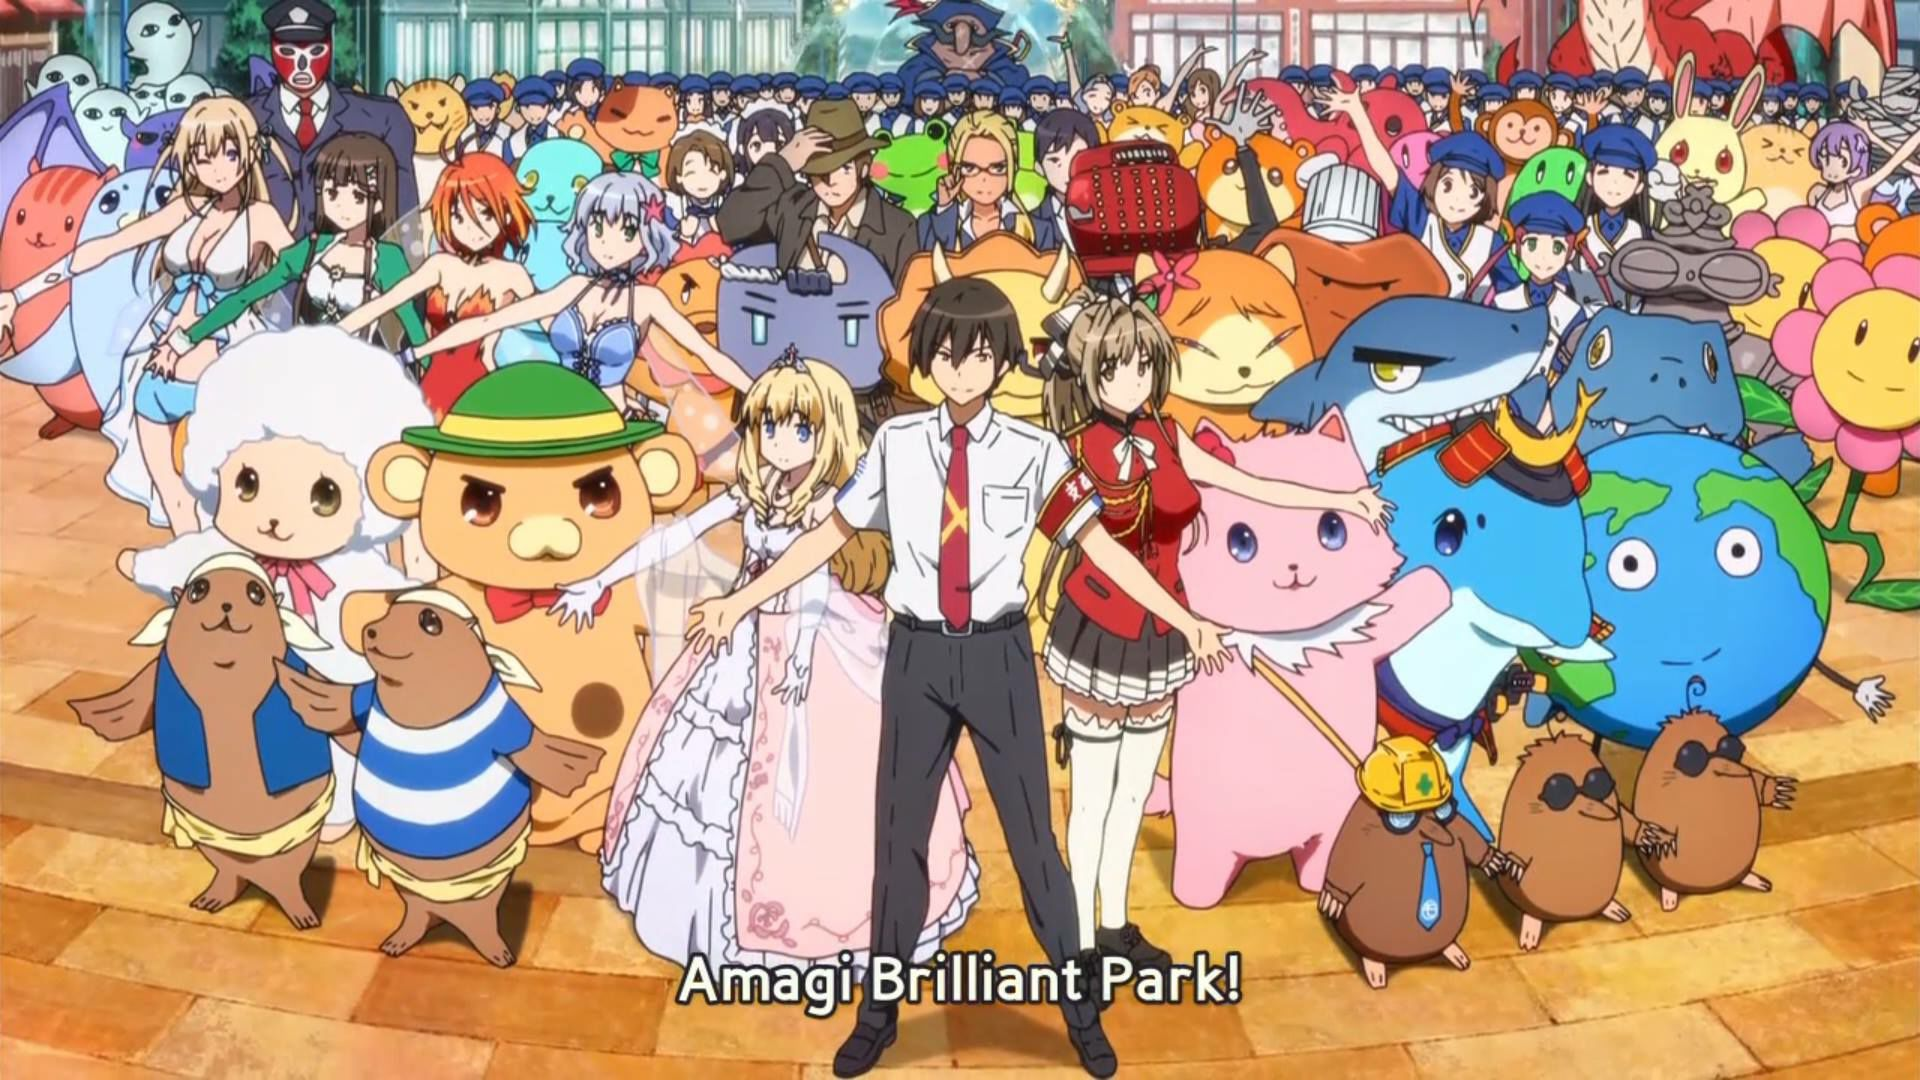 Amagi Brilliant Park Wallpaper 17   1920 X 1080 stmednet 1920x1080